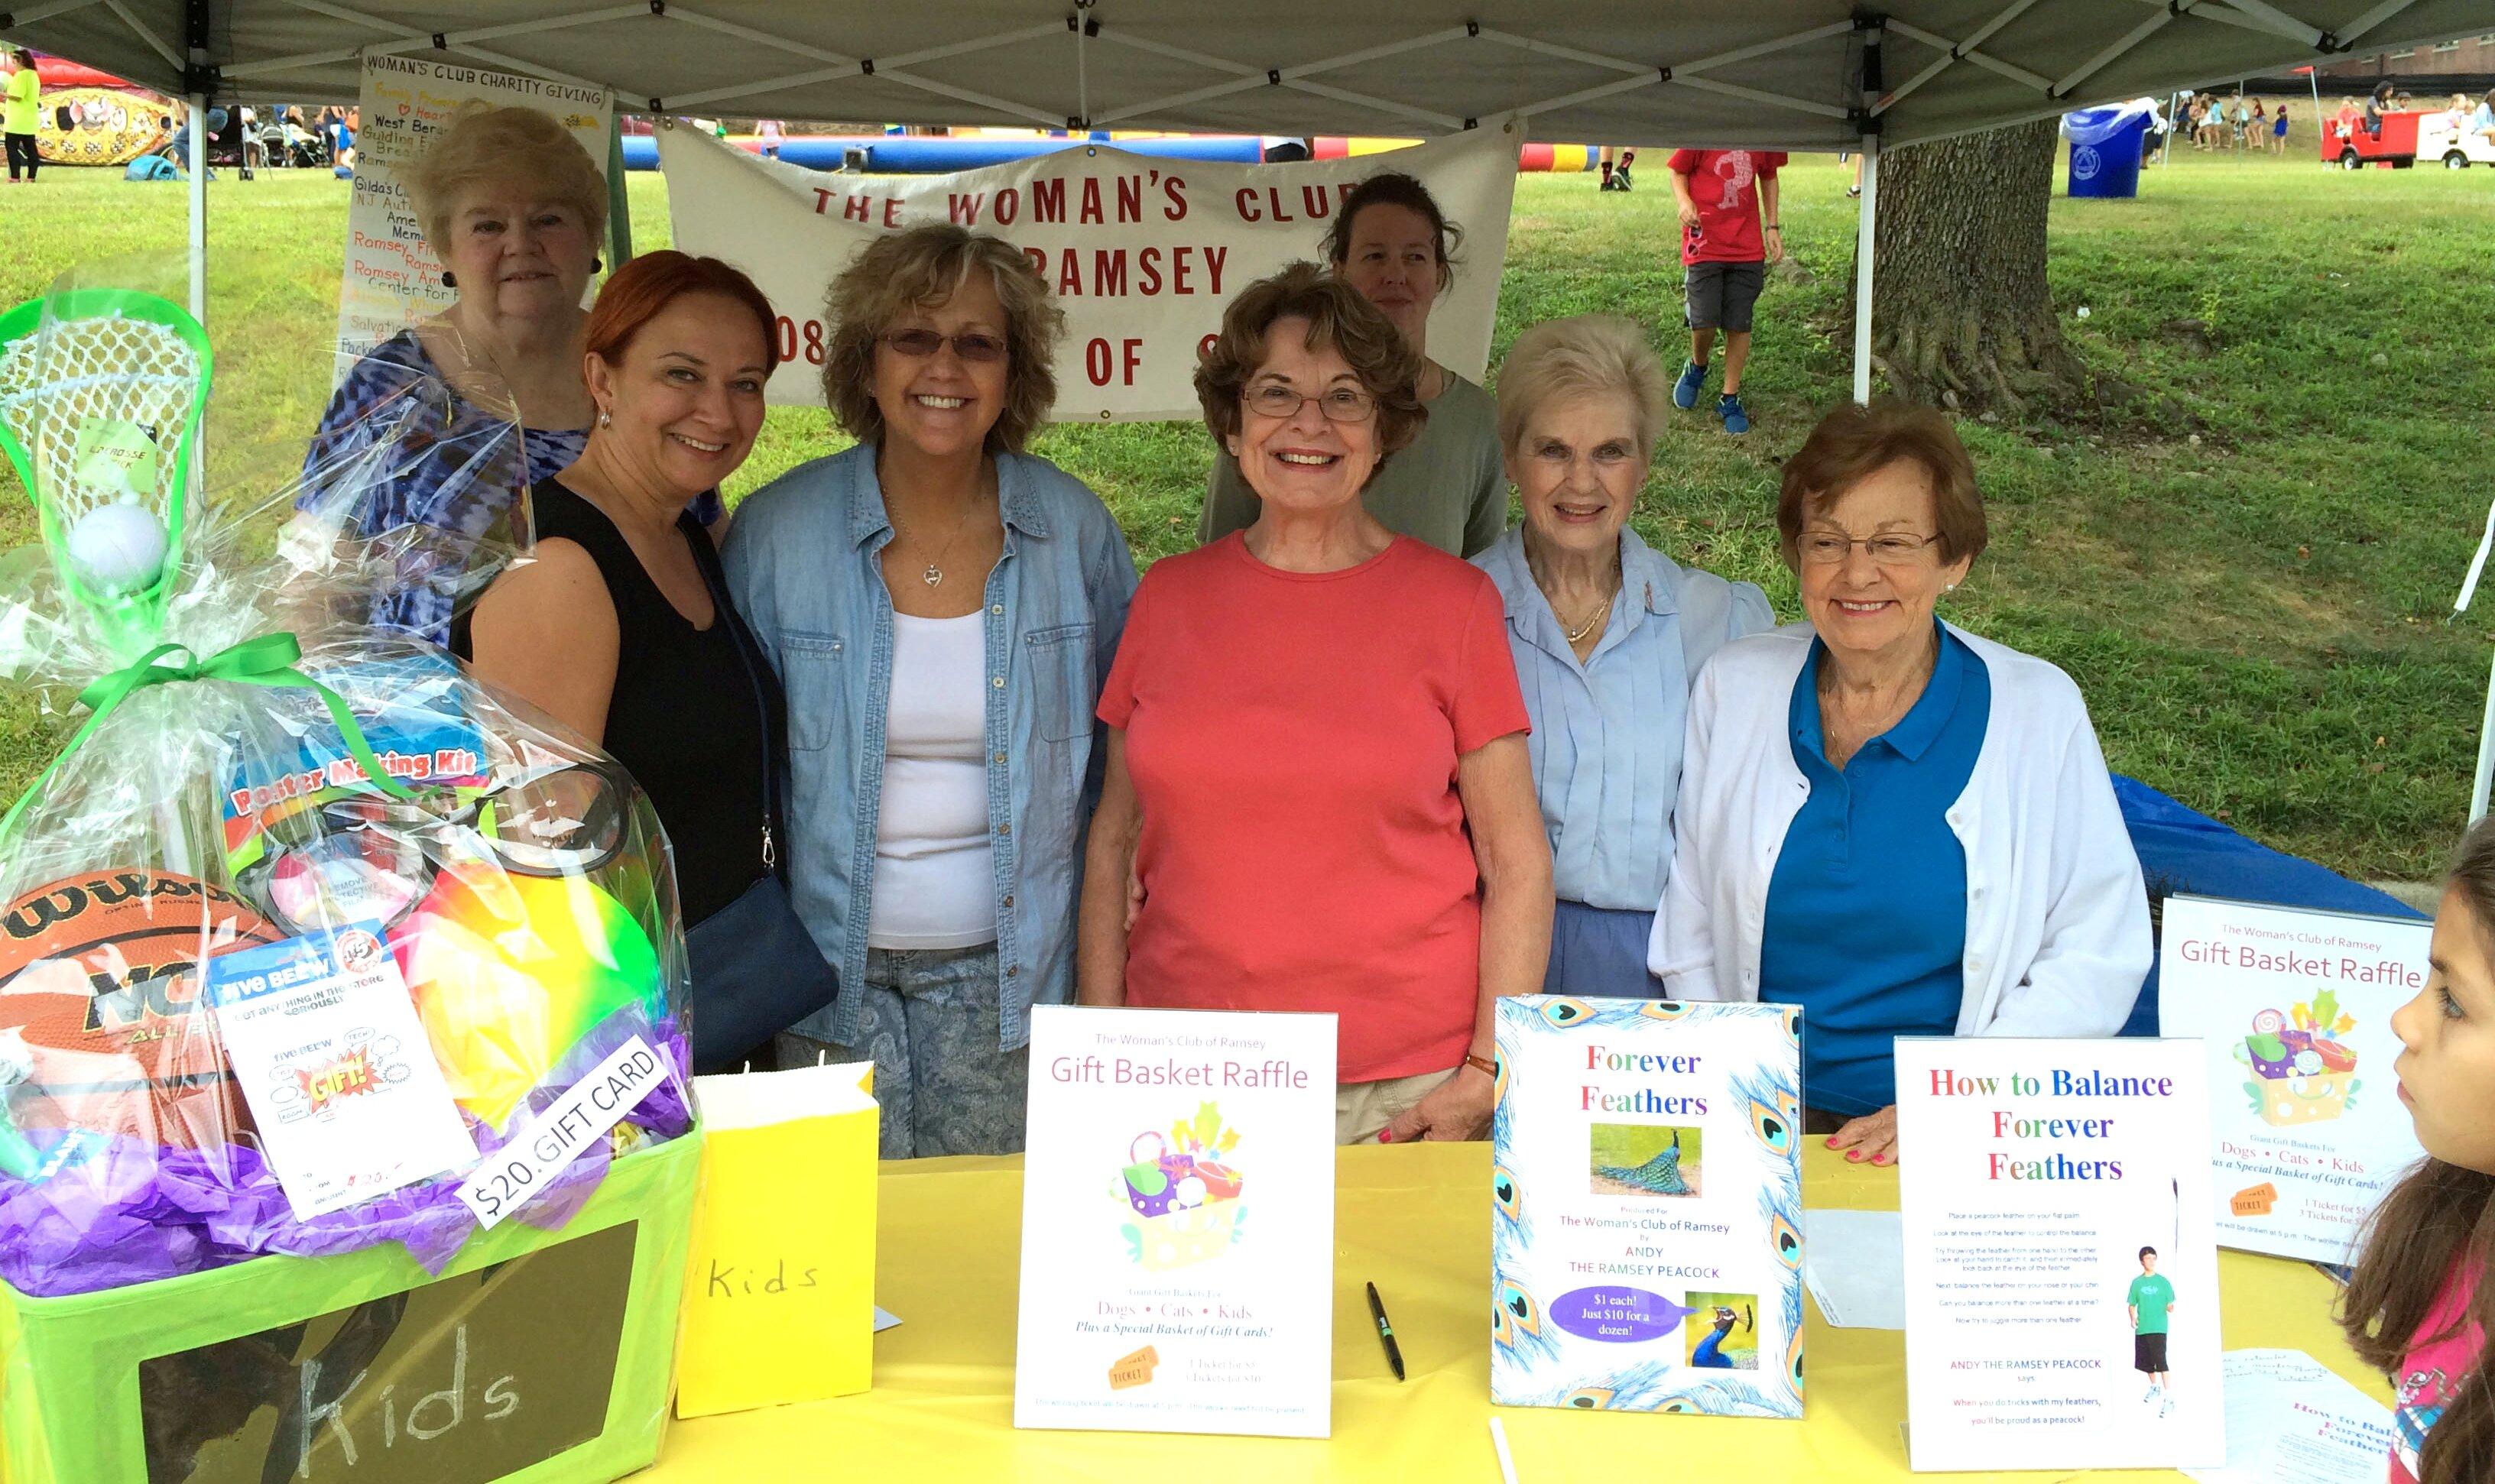 Dorothy Verdone, center, organized the Ramsey Day Gift Basket Raffle. Helpers included Betty Green, Jade Gunver, Helen Hodge, Marge Detweiler and Ginny Verdone.